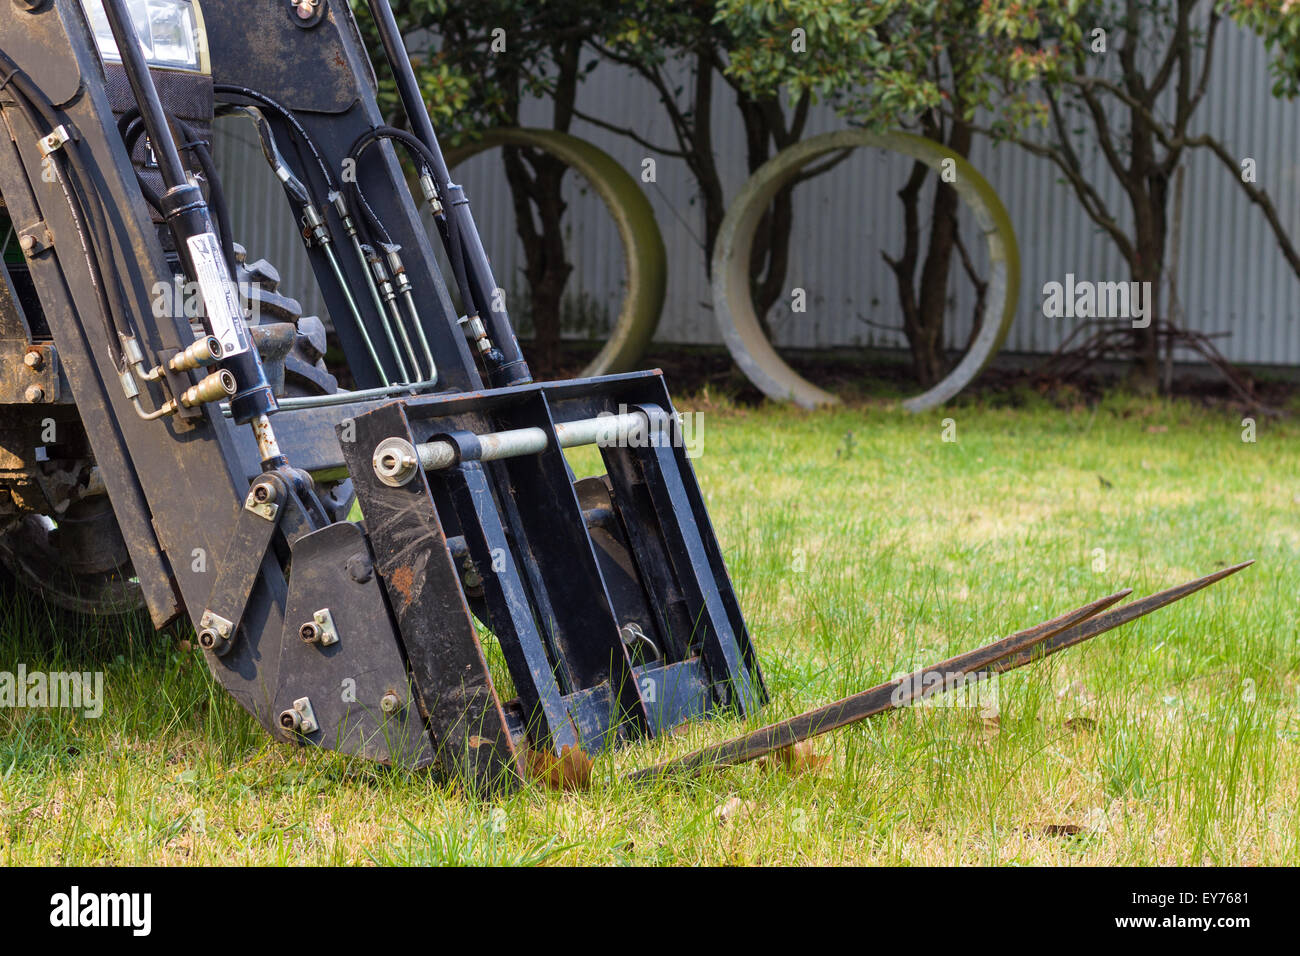 Front end loader with a forklift attachment fitted to a small tractor on green grass - Stock Image